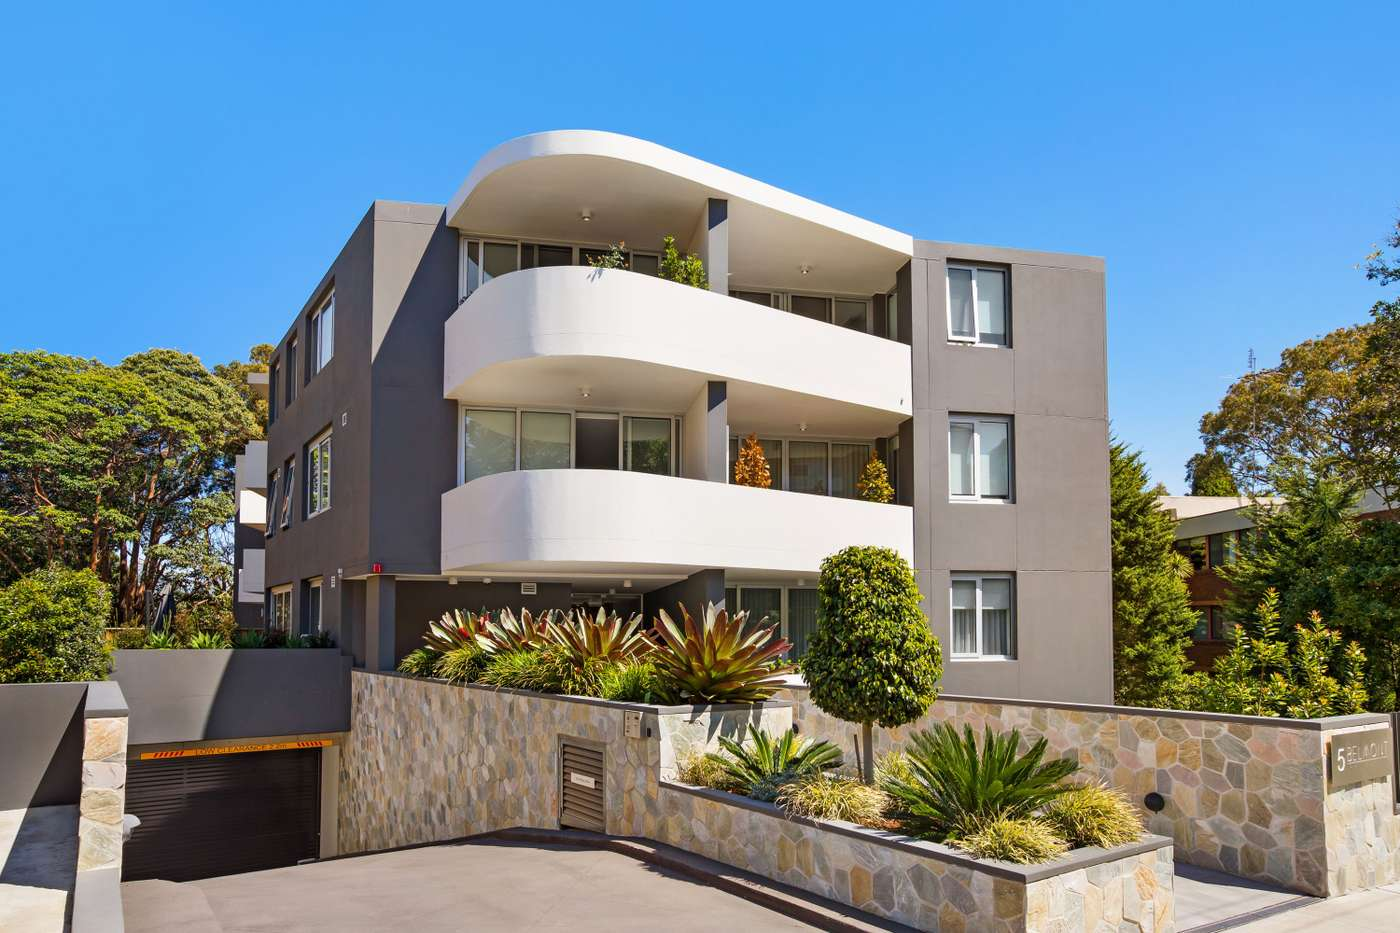 Main view of Homely apartment listing, 106/5 Belmont Avenue, Wollstonecraft, NSW 2065